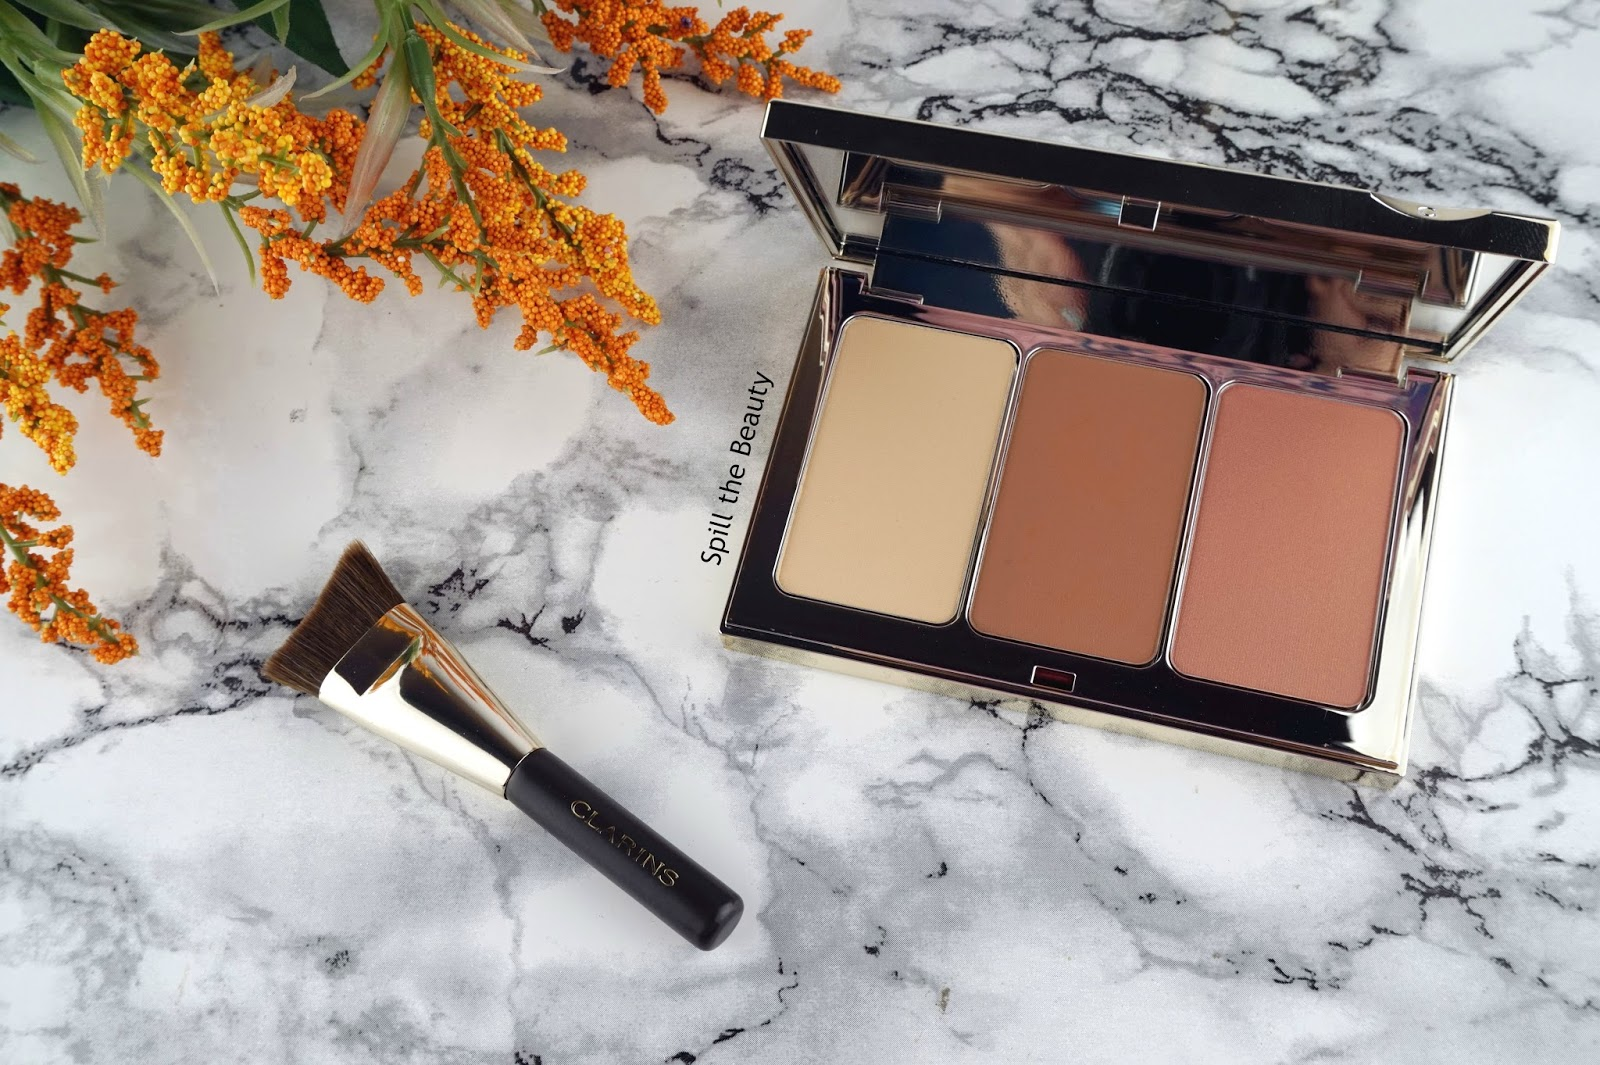 clarins spring 2017 smoky eyeshadow palette face contouring palette 4 colour all in one pen joli rouge lipstick tender nude 31